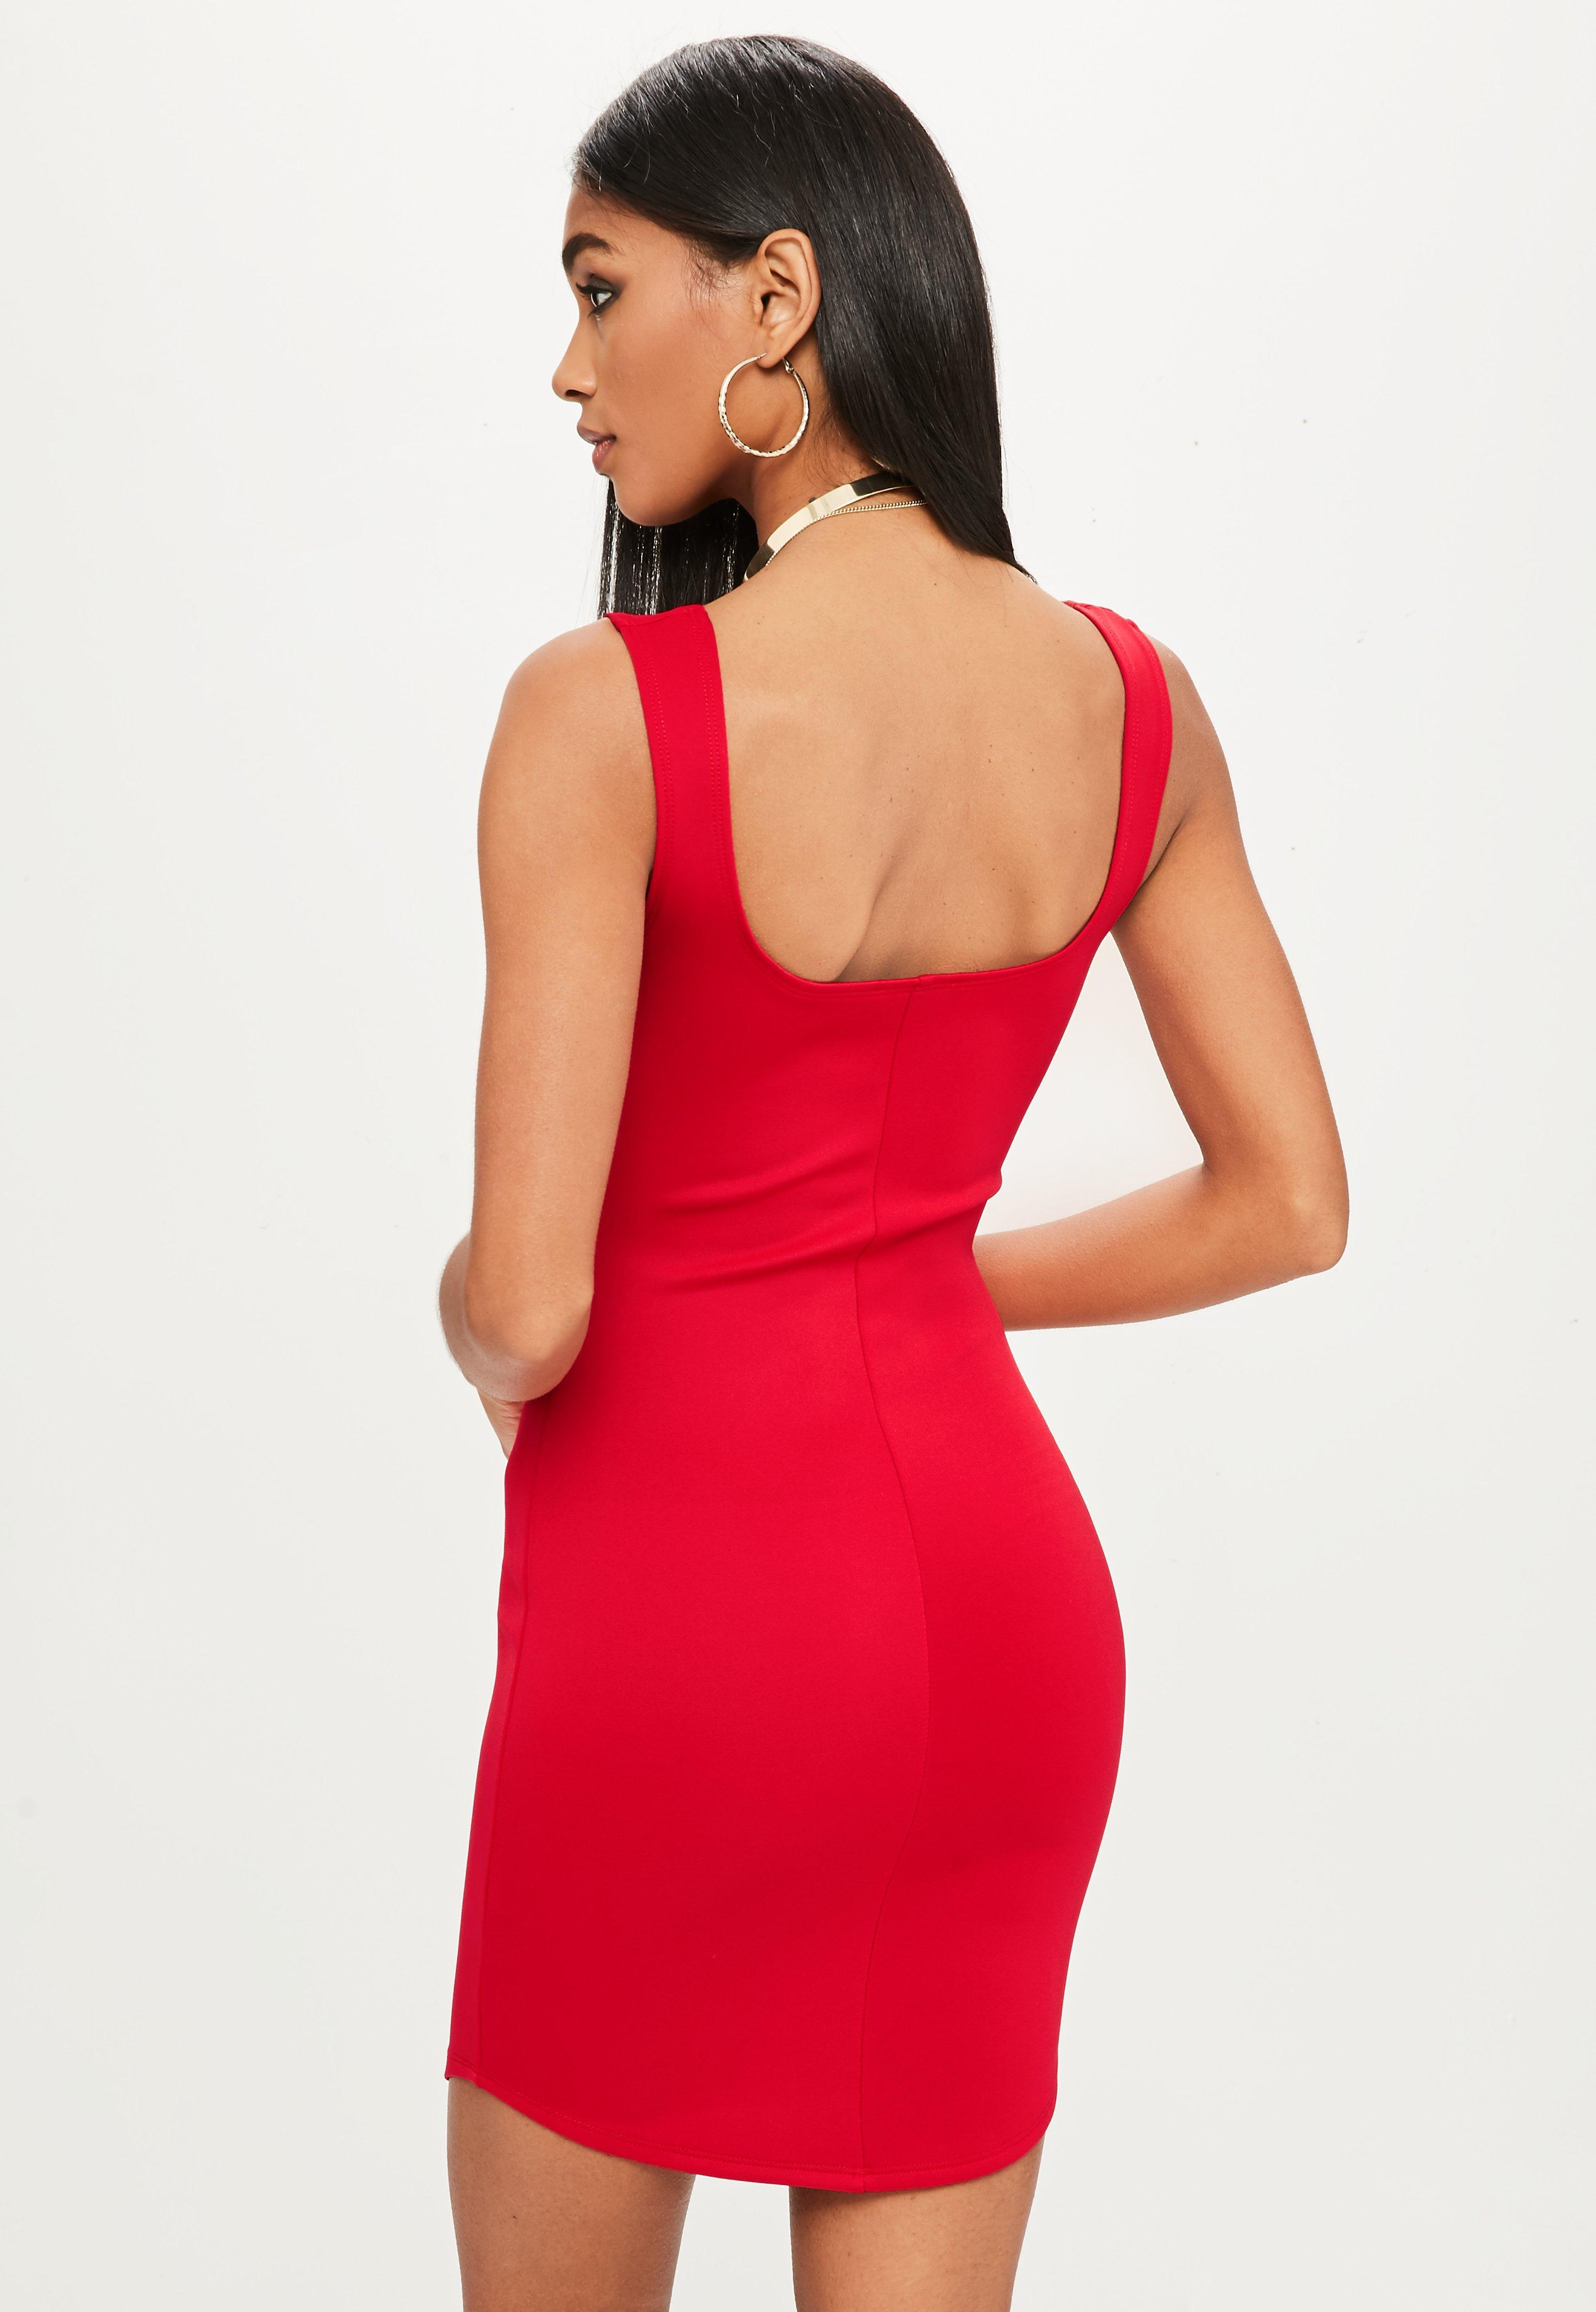 Release Dates For Sale Sast Cheap Online Missguided Pink Scuba Neck Bodycon Dress T4uxbC3